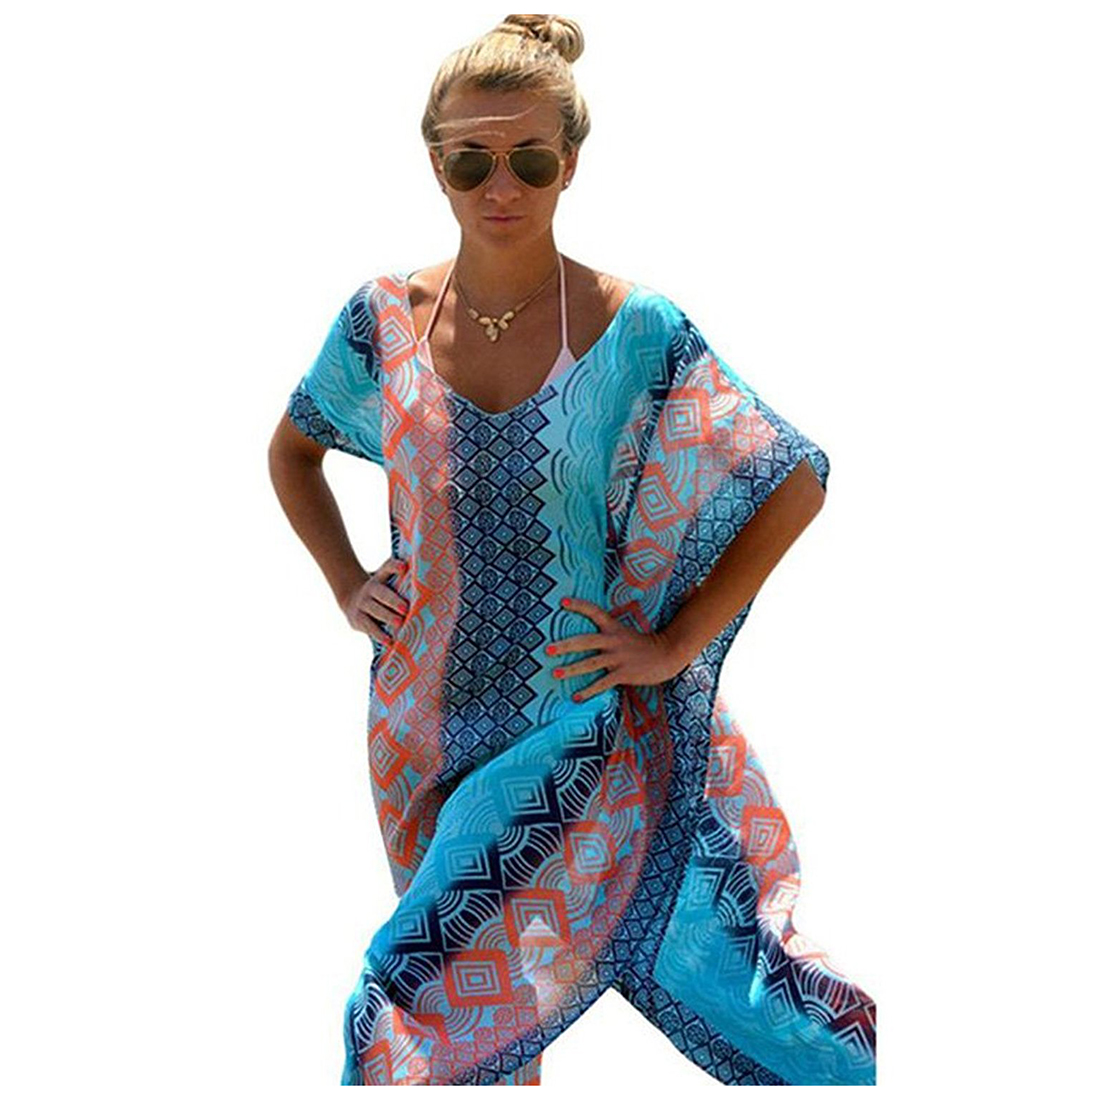 2x Womens Chiffon Robe Beach Dress Swimsuit Bathing Suits Bikini Cover-ups,Blue,One Size